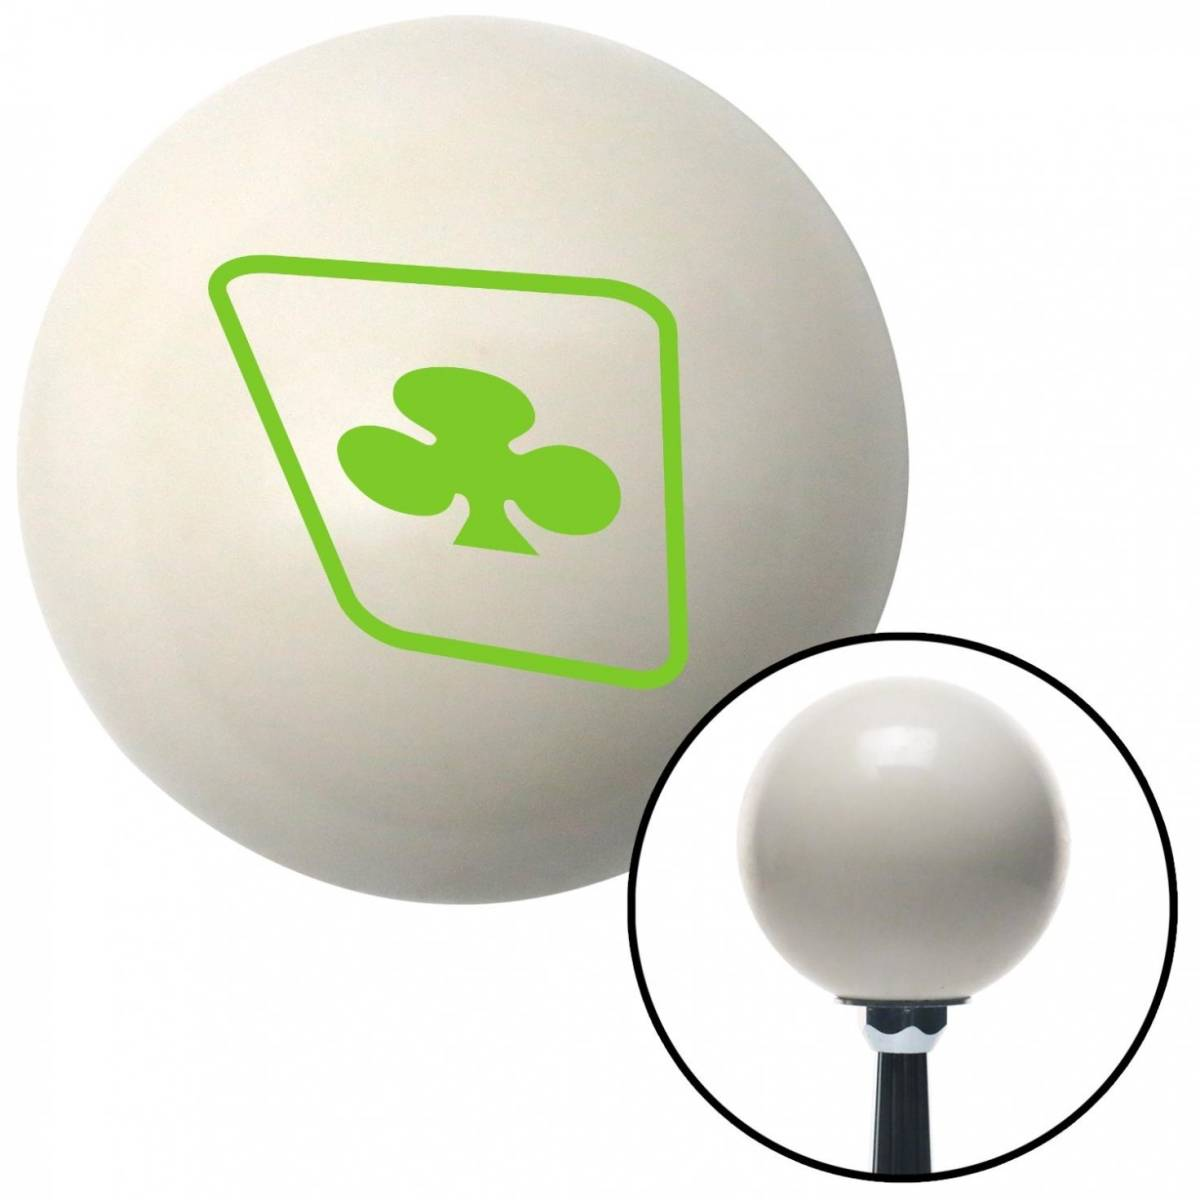 NewAlthlete Green Clubs on a Card Ivory Shift Knob with M16 x 1.5 Insert Shifter Auto Manual Brody